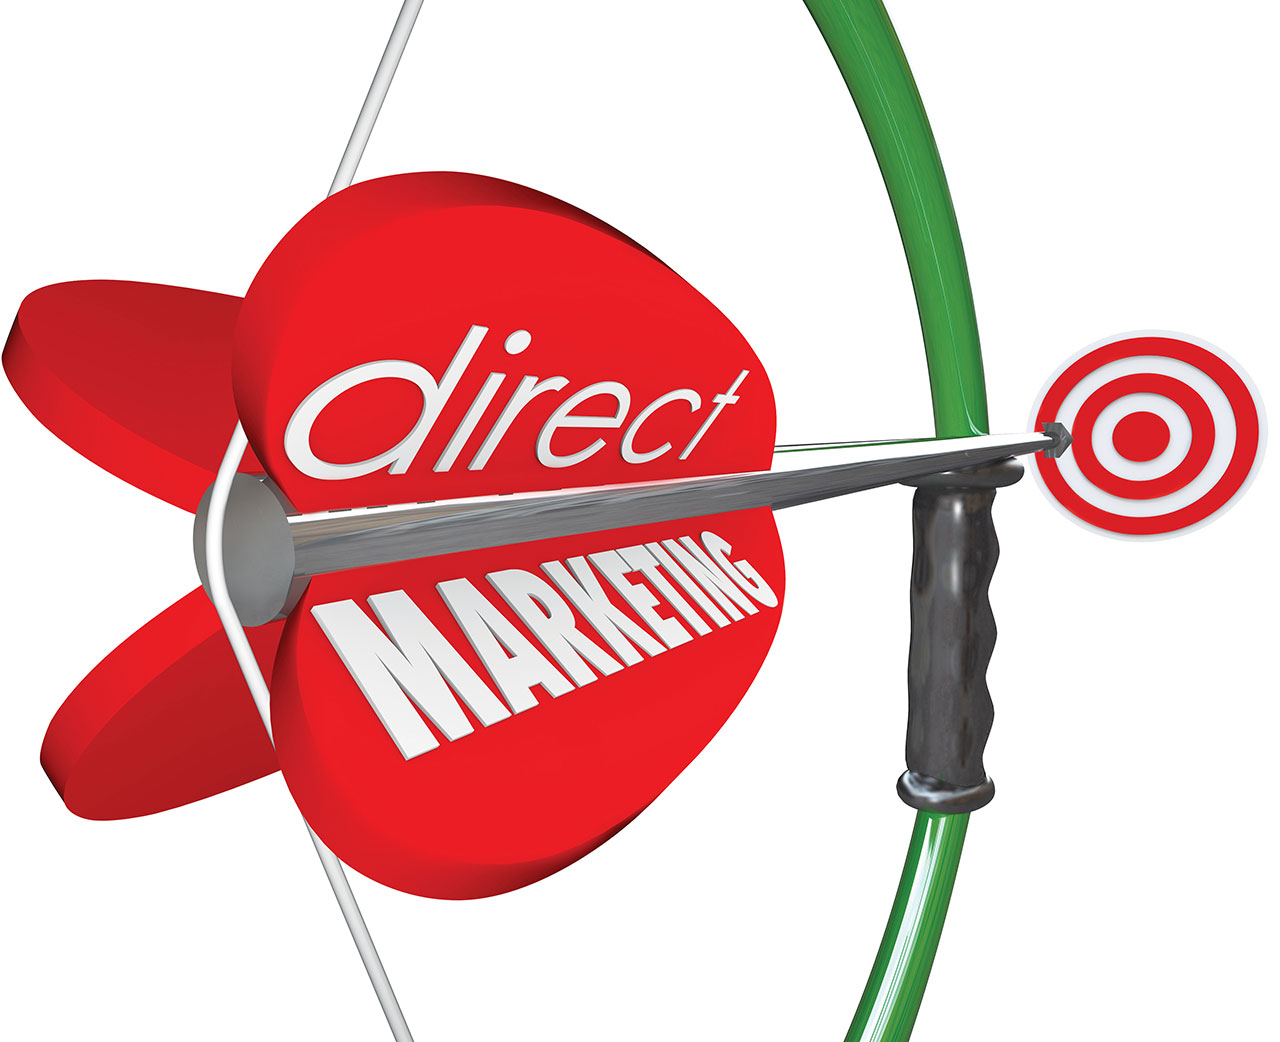 Direct Marketing Bow Arow Target New Customers Prospects